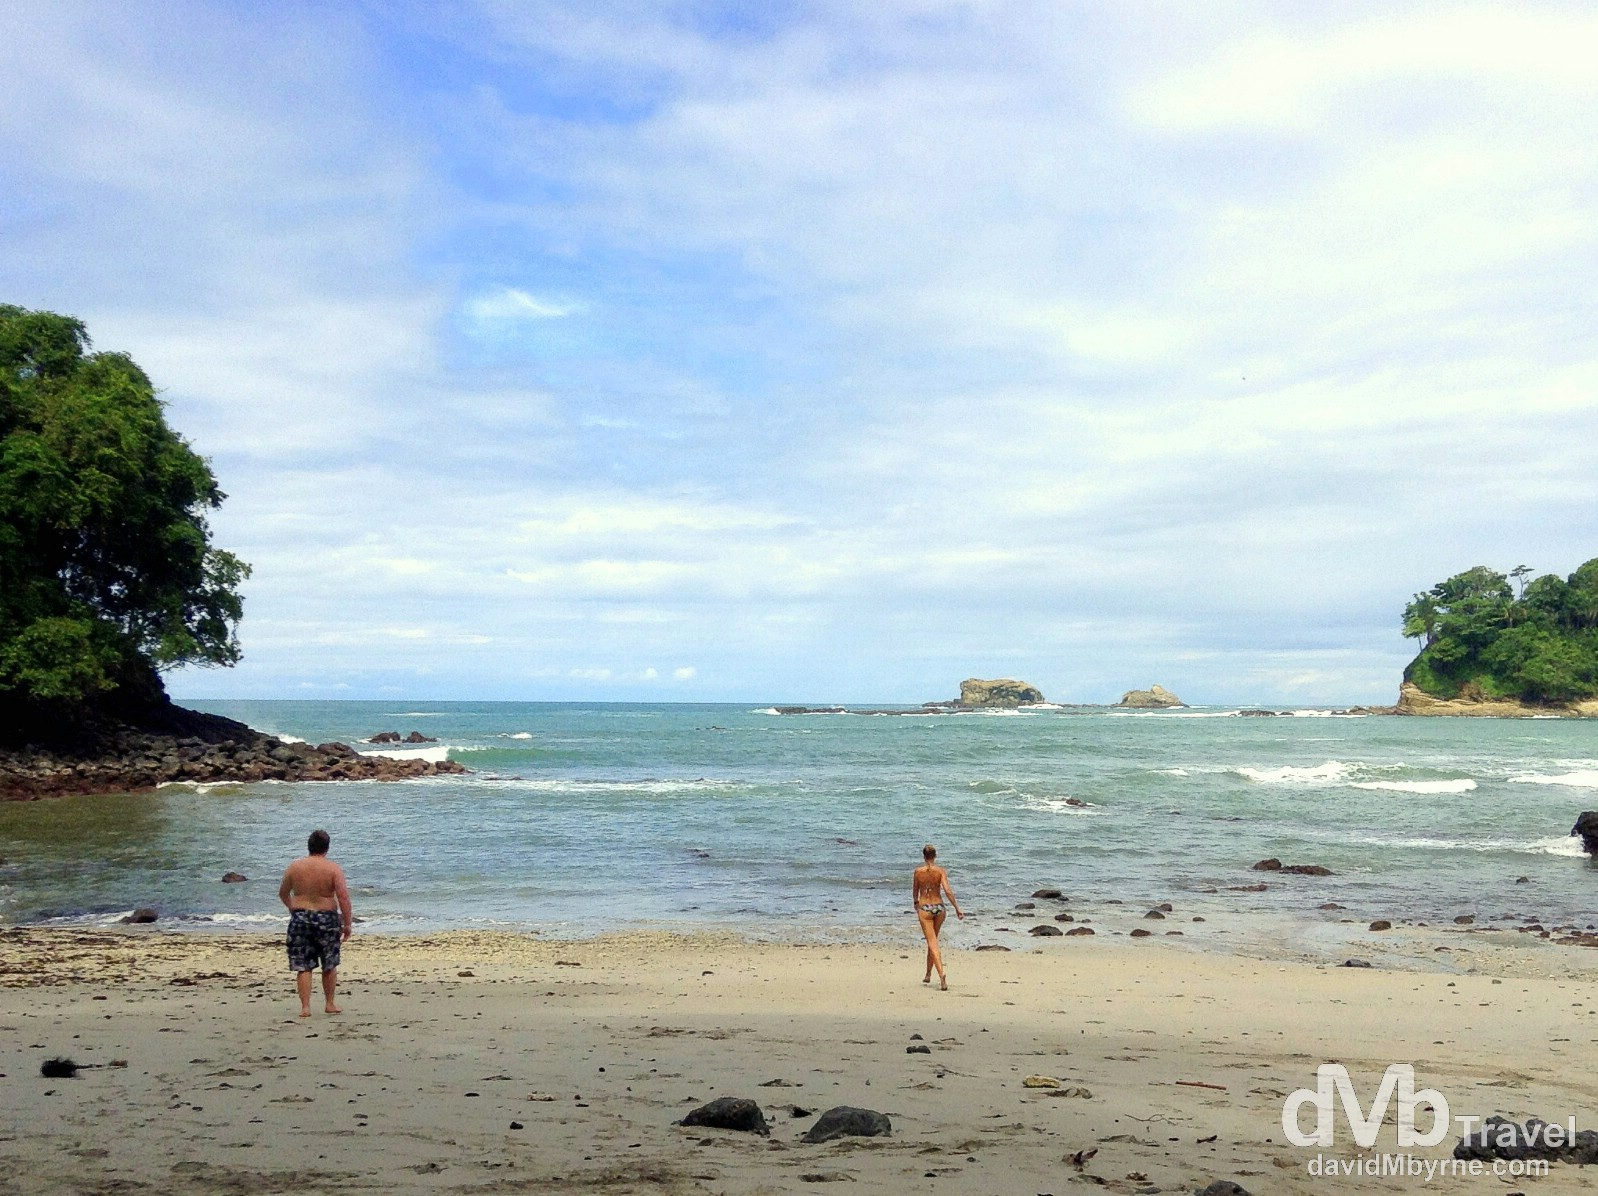 Contrasts on a beach in Parque Nacional Manuel Antonio, Costa Rica. June 26th 2013 (iPod)